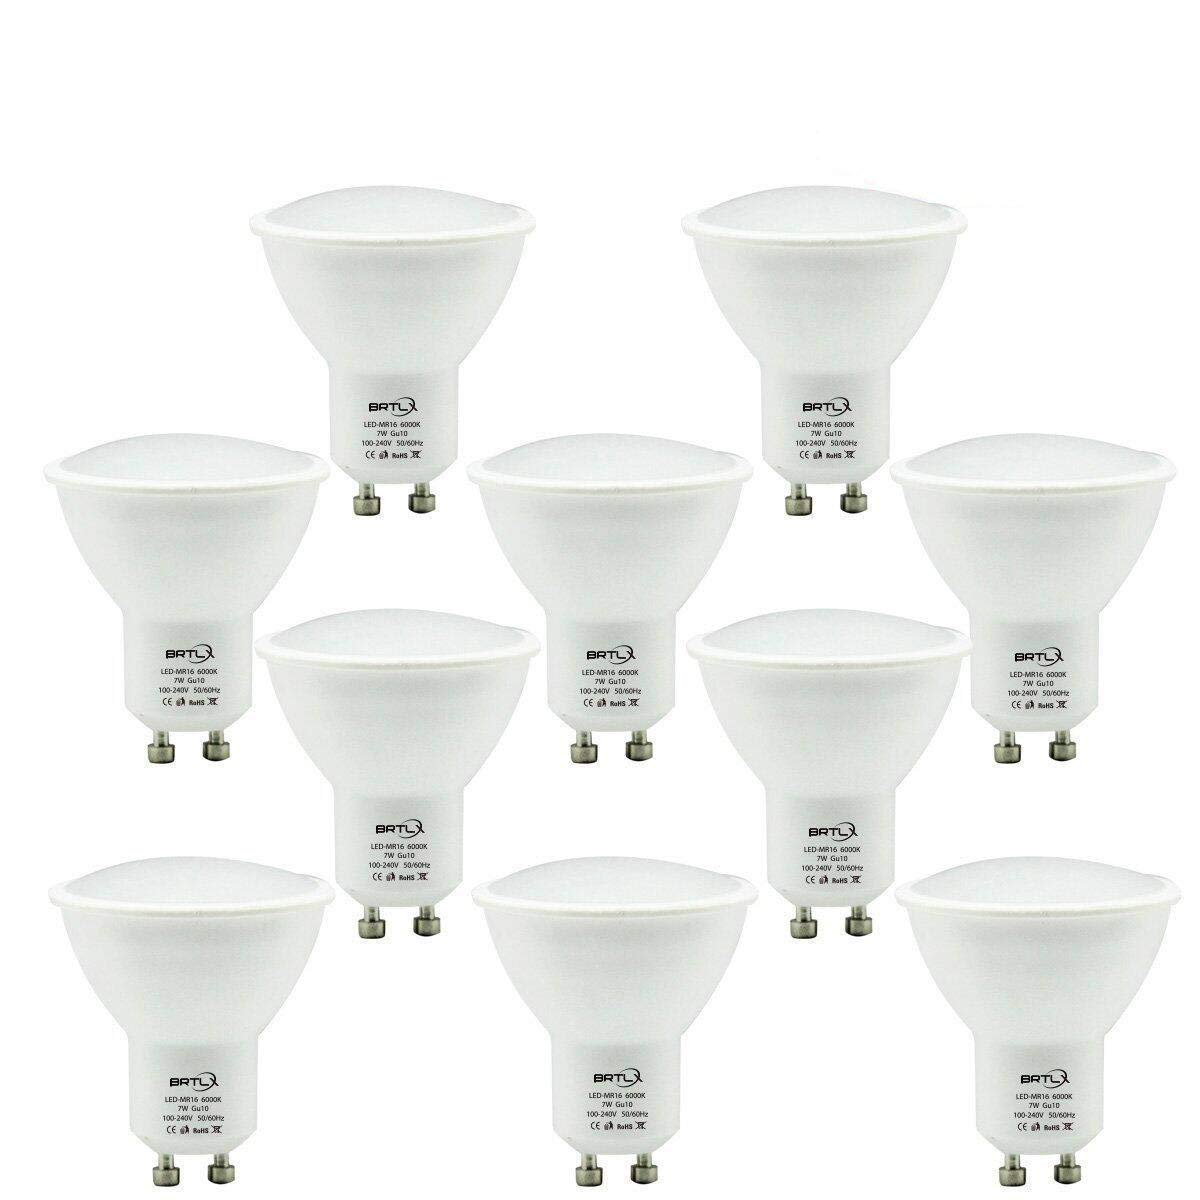 BRTLX 7W GU10 LED Bulb Non-Dimmable 6000K Cool White 120 Degree Beam Angle 600lm Frosted 10-Pack